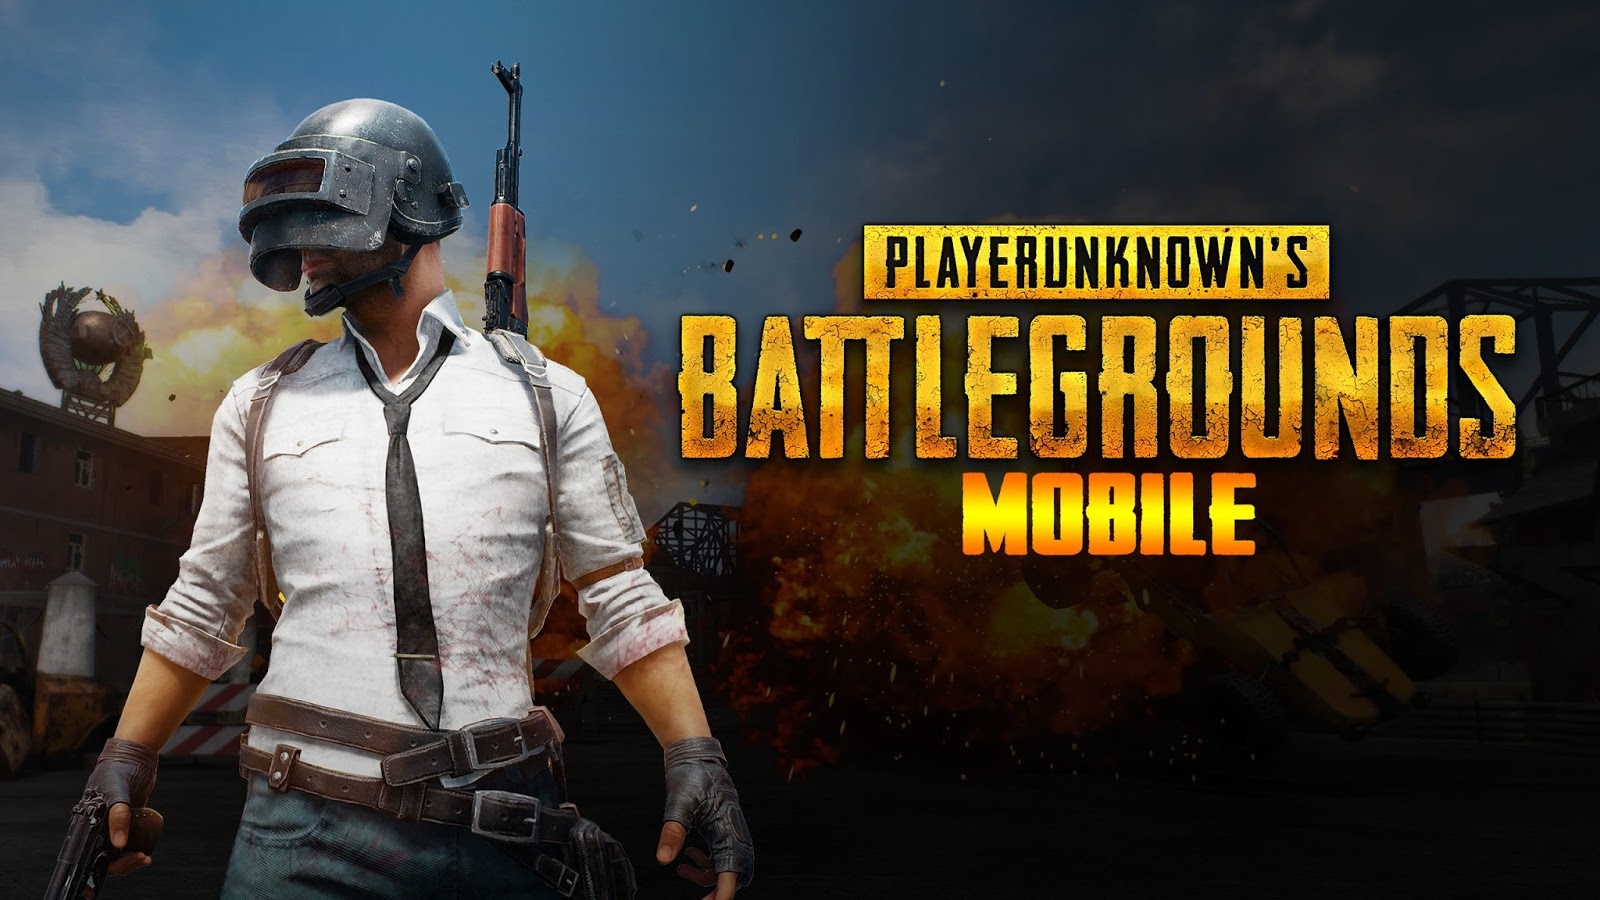 How To Enable High Graphics On Pubg Mobile English Version: PUBG Mobile English Version Free Download [APK+DATA